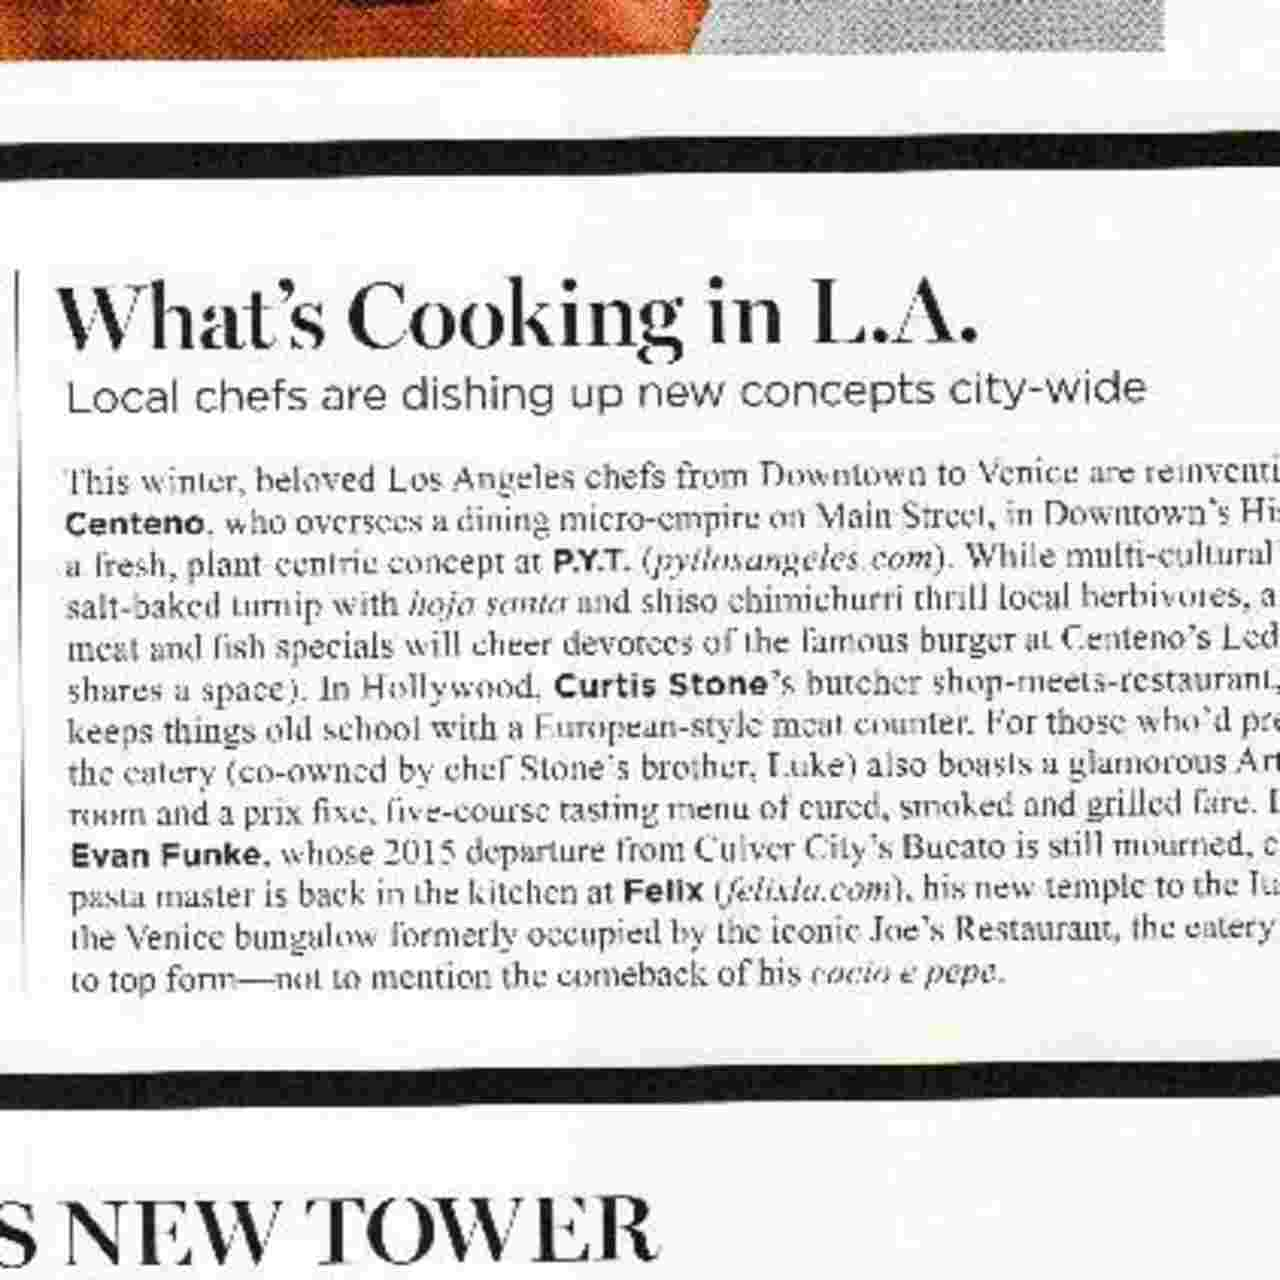 Whats Cooking in L.A